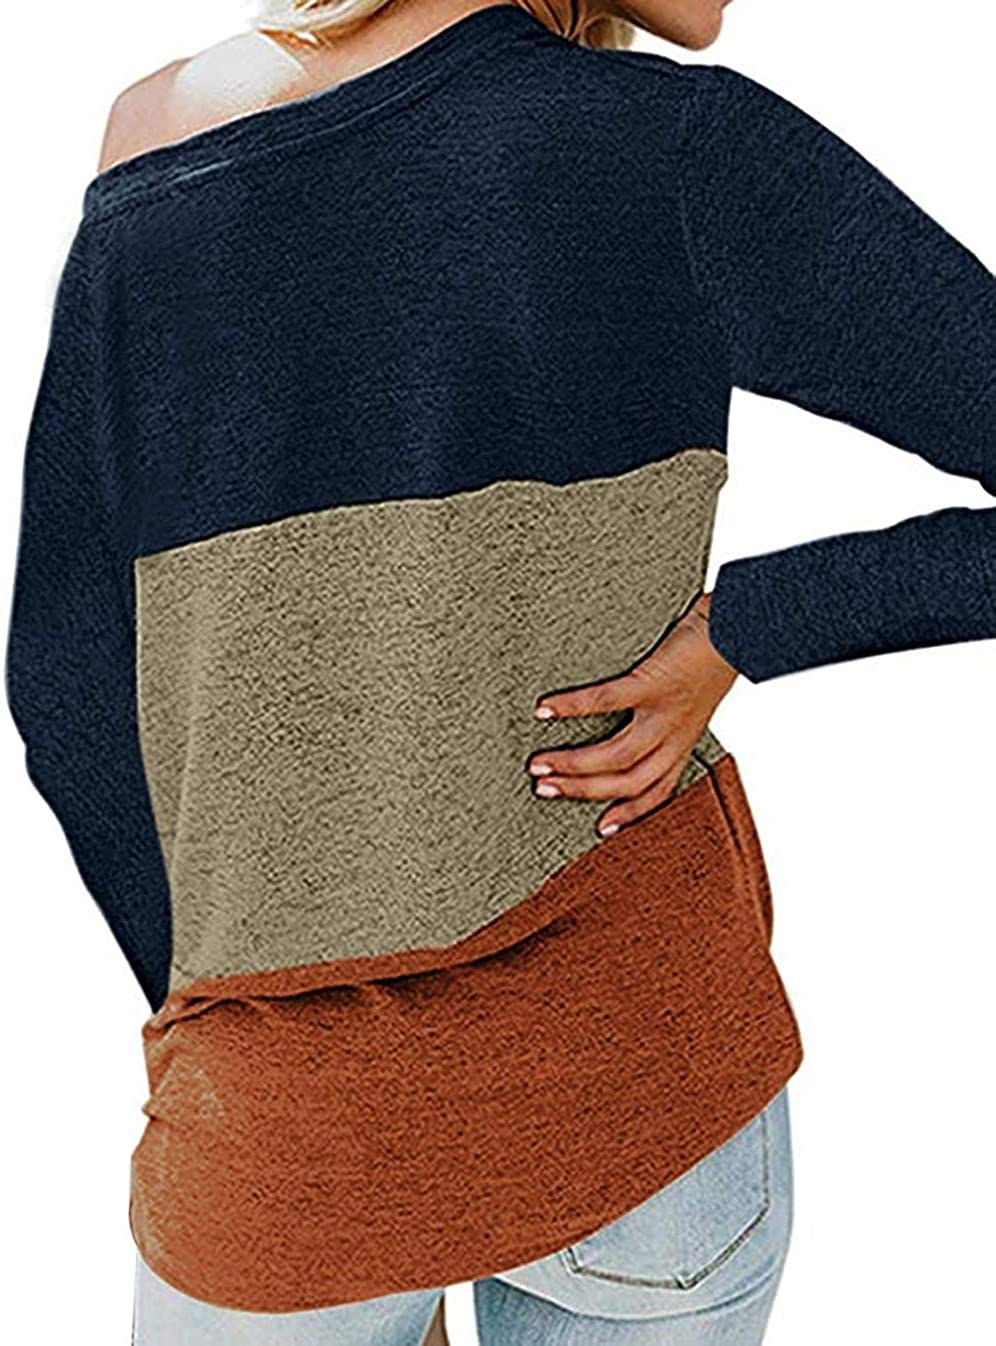 LET Ladies Long Sleeve T-Shirt Top Sweatshirt Round Neck Top Color Block Top Pullover A-navy